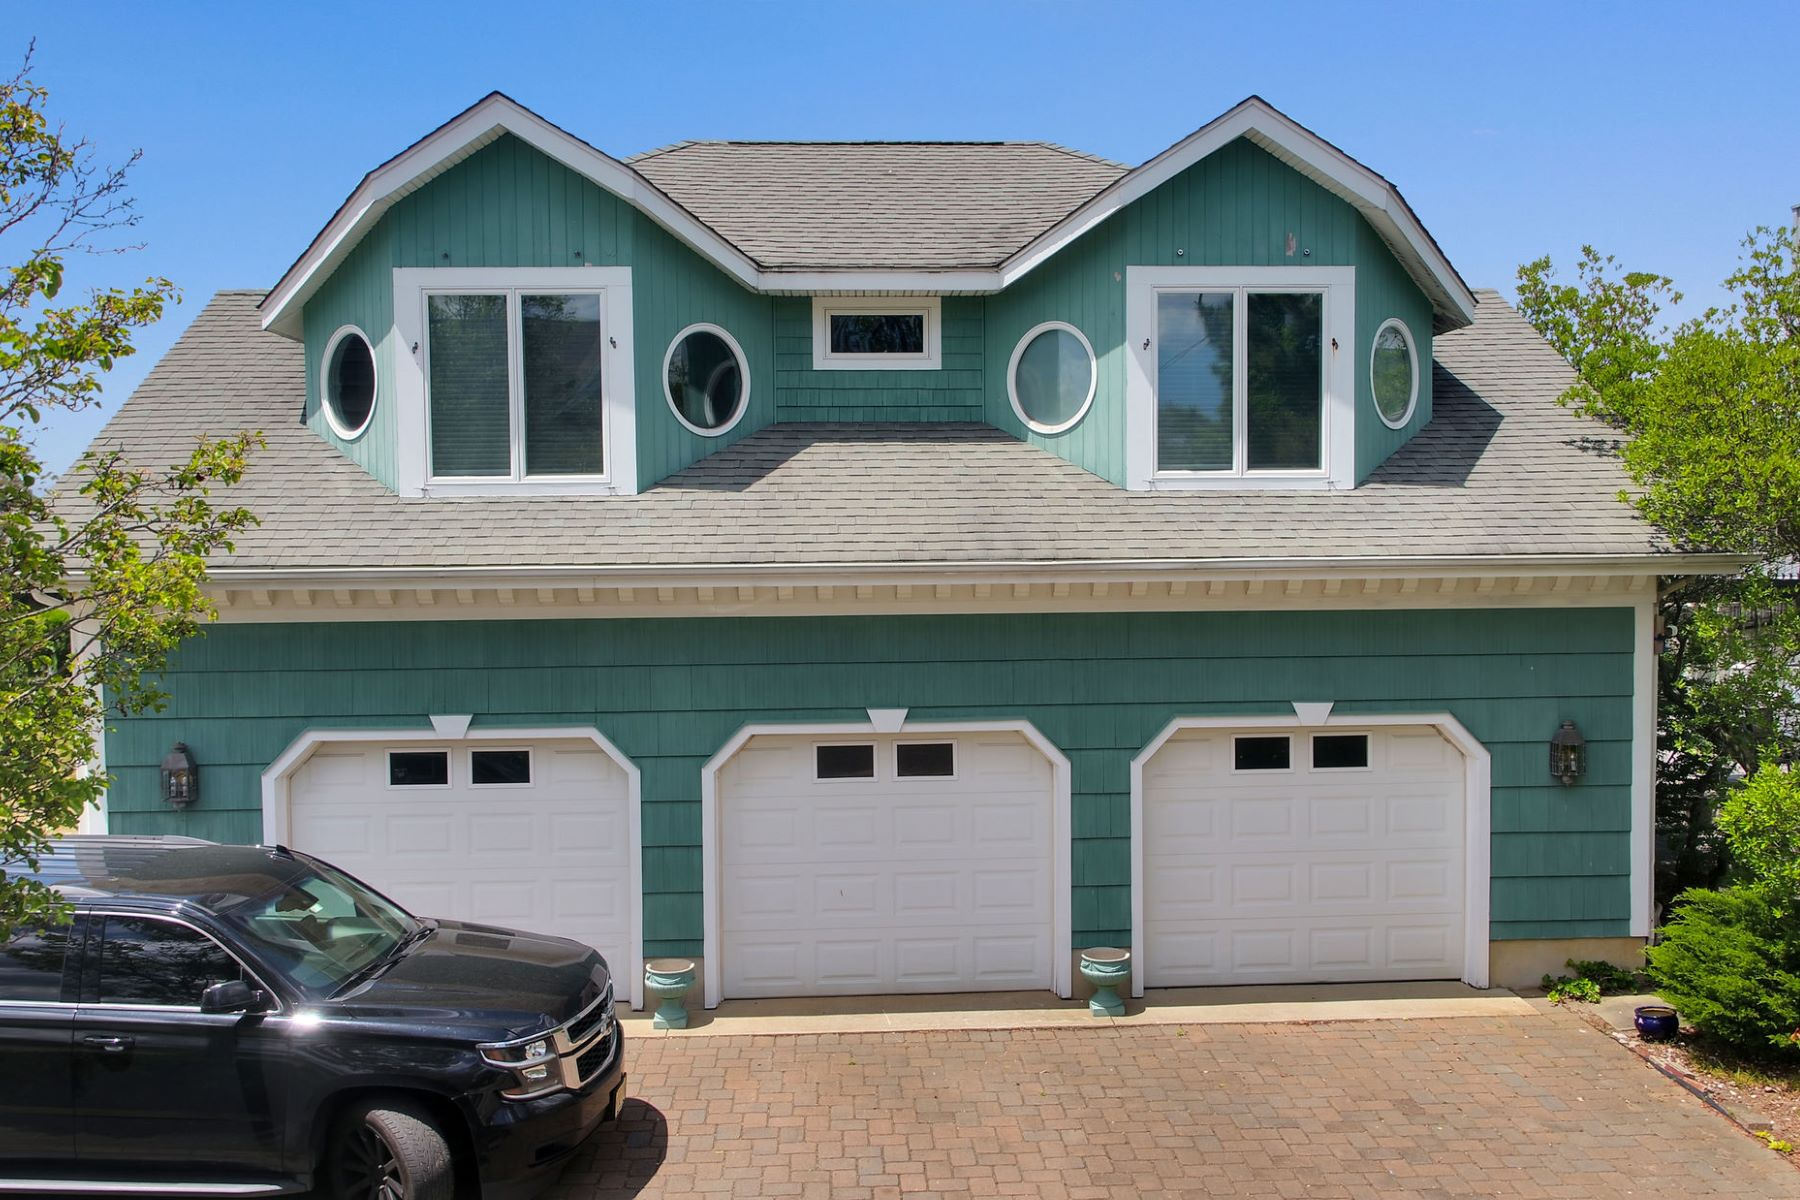 Single Family Homes for Sale at Waterfront 35 Deep Creek Drive A Manasquan, New Jersey 08736 United States